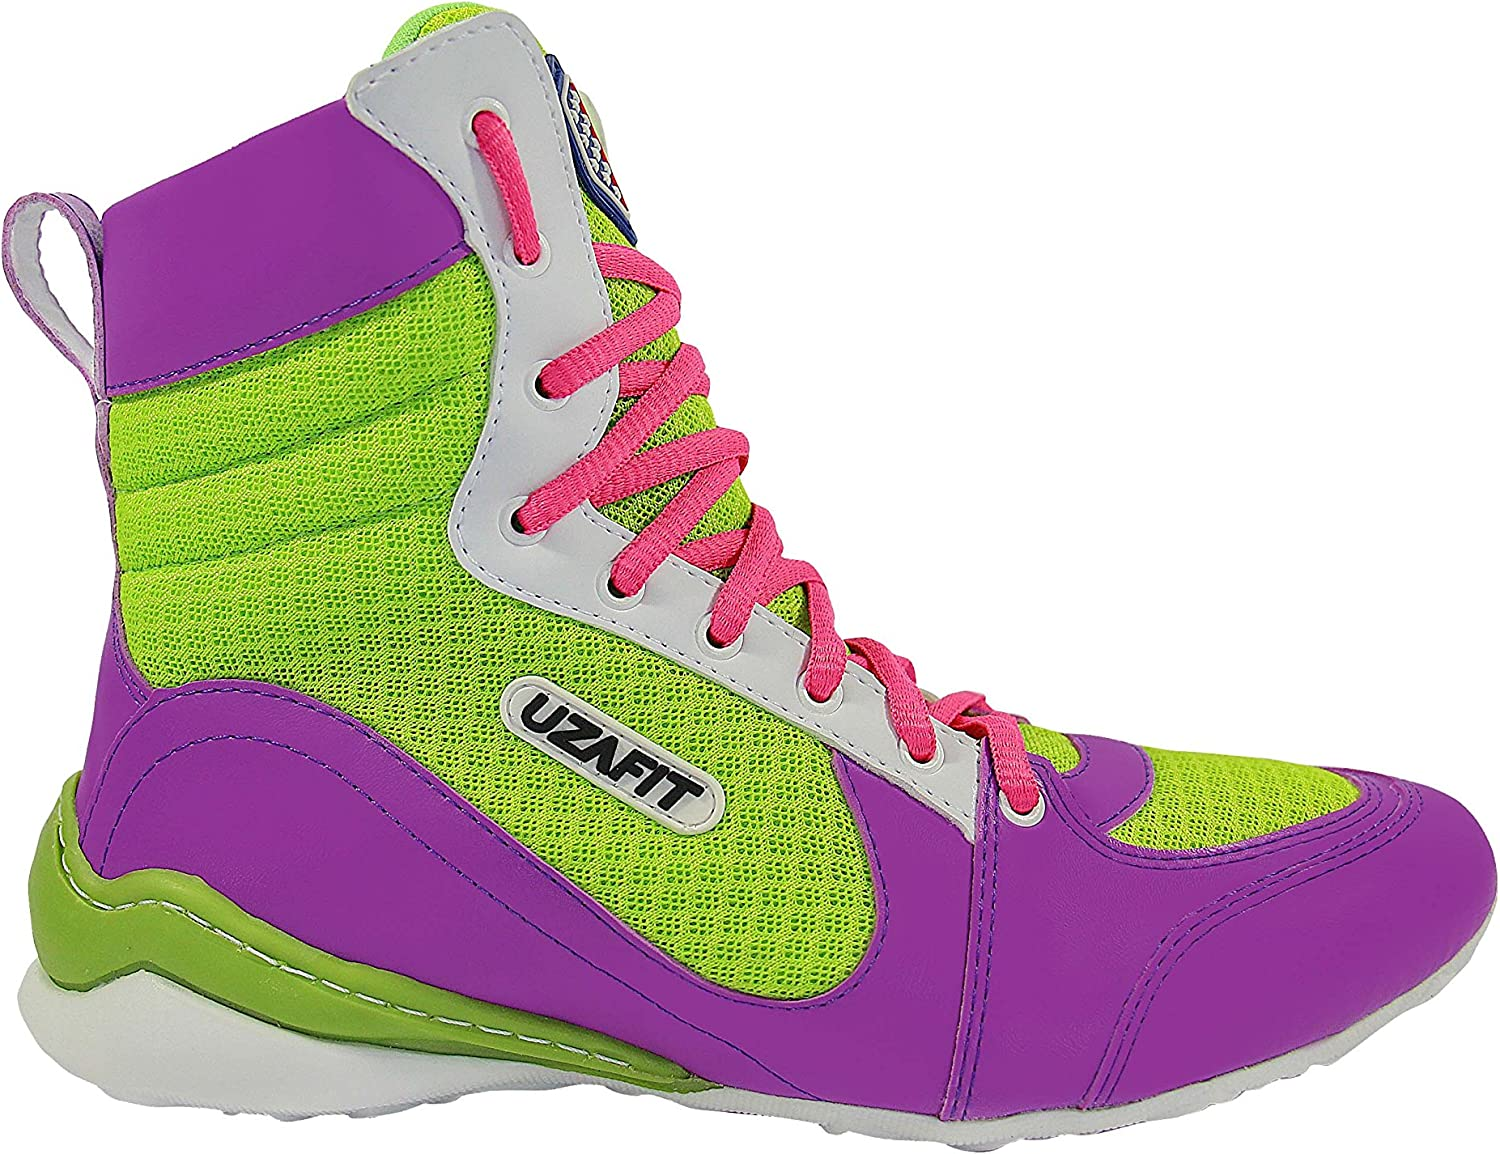 UZAFIT Miami Bodybuilding Weightlifting Crossfit Boxing shoes Sneaker Purple Green Pink Women's 7.5